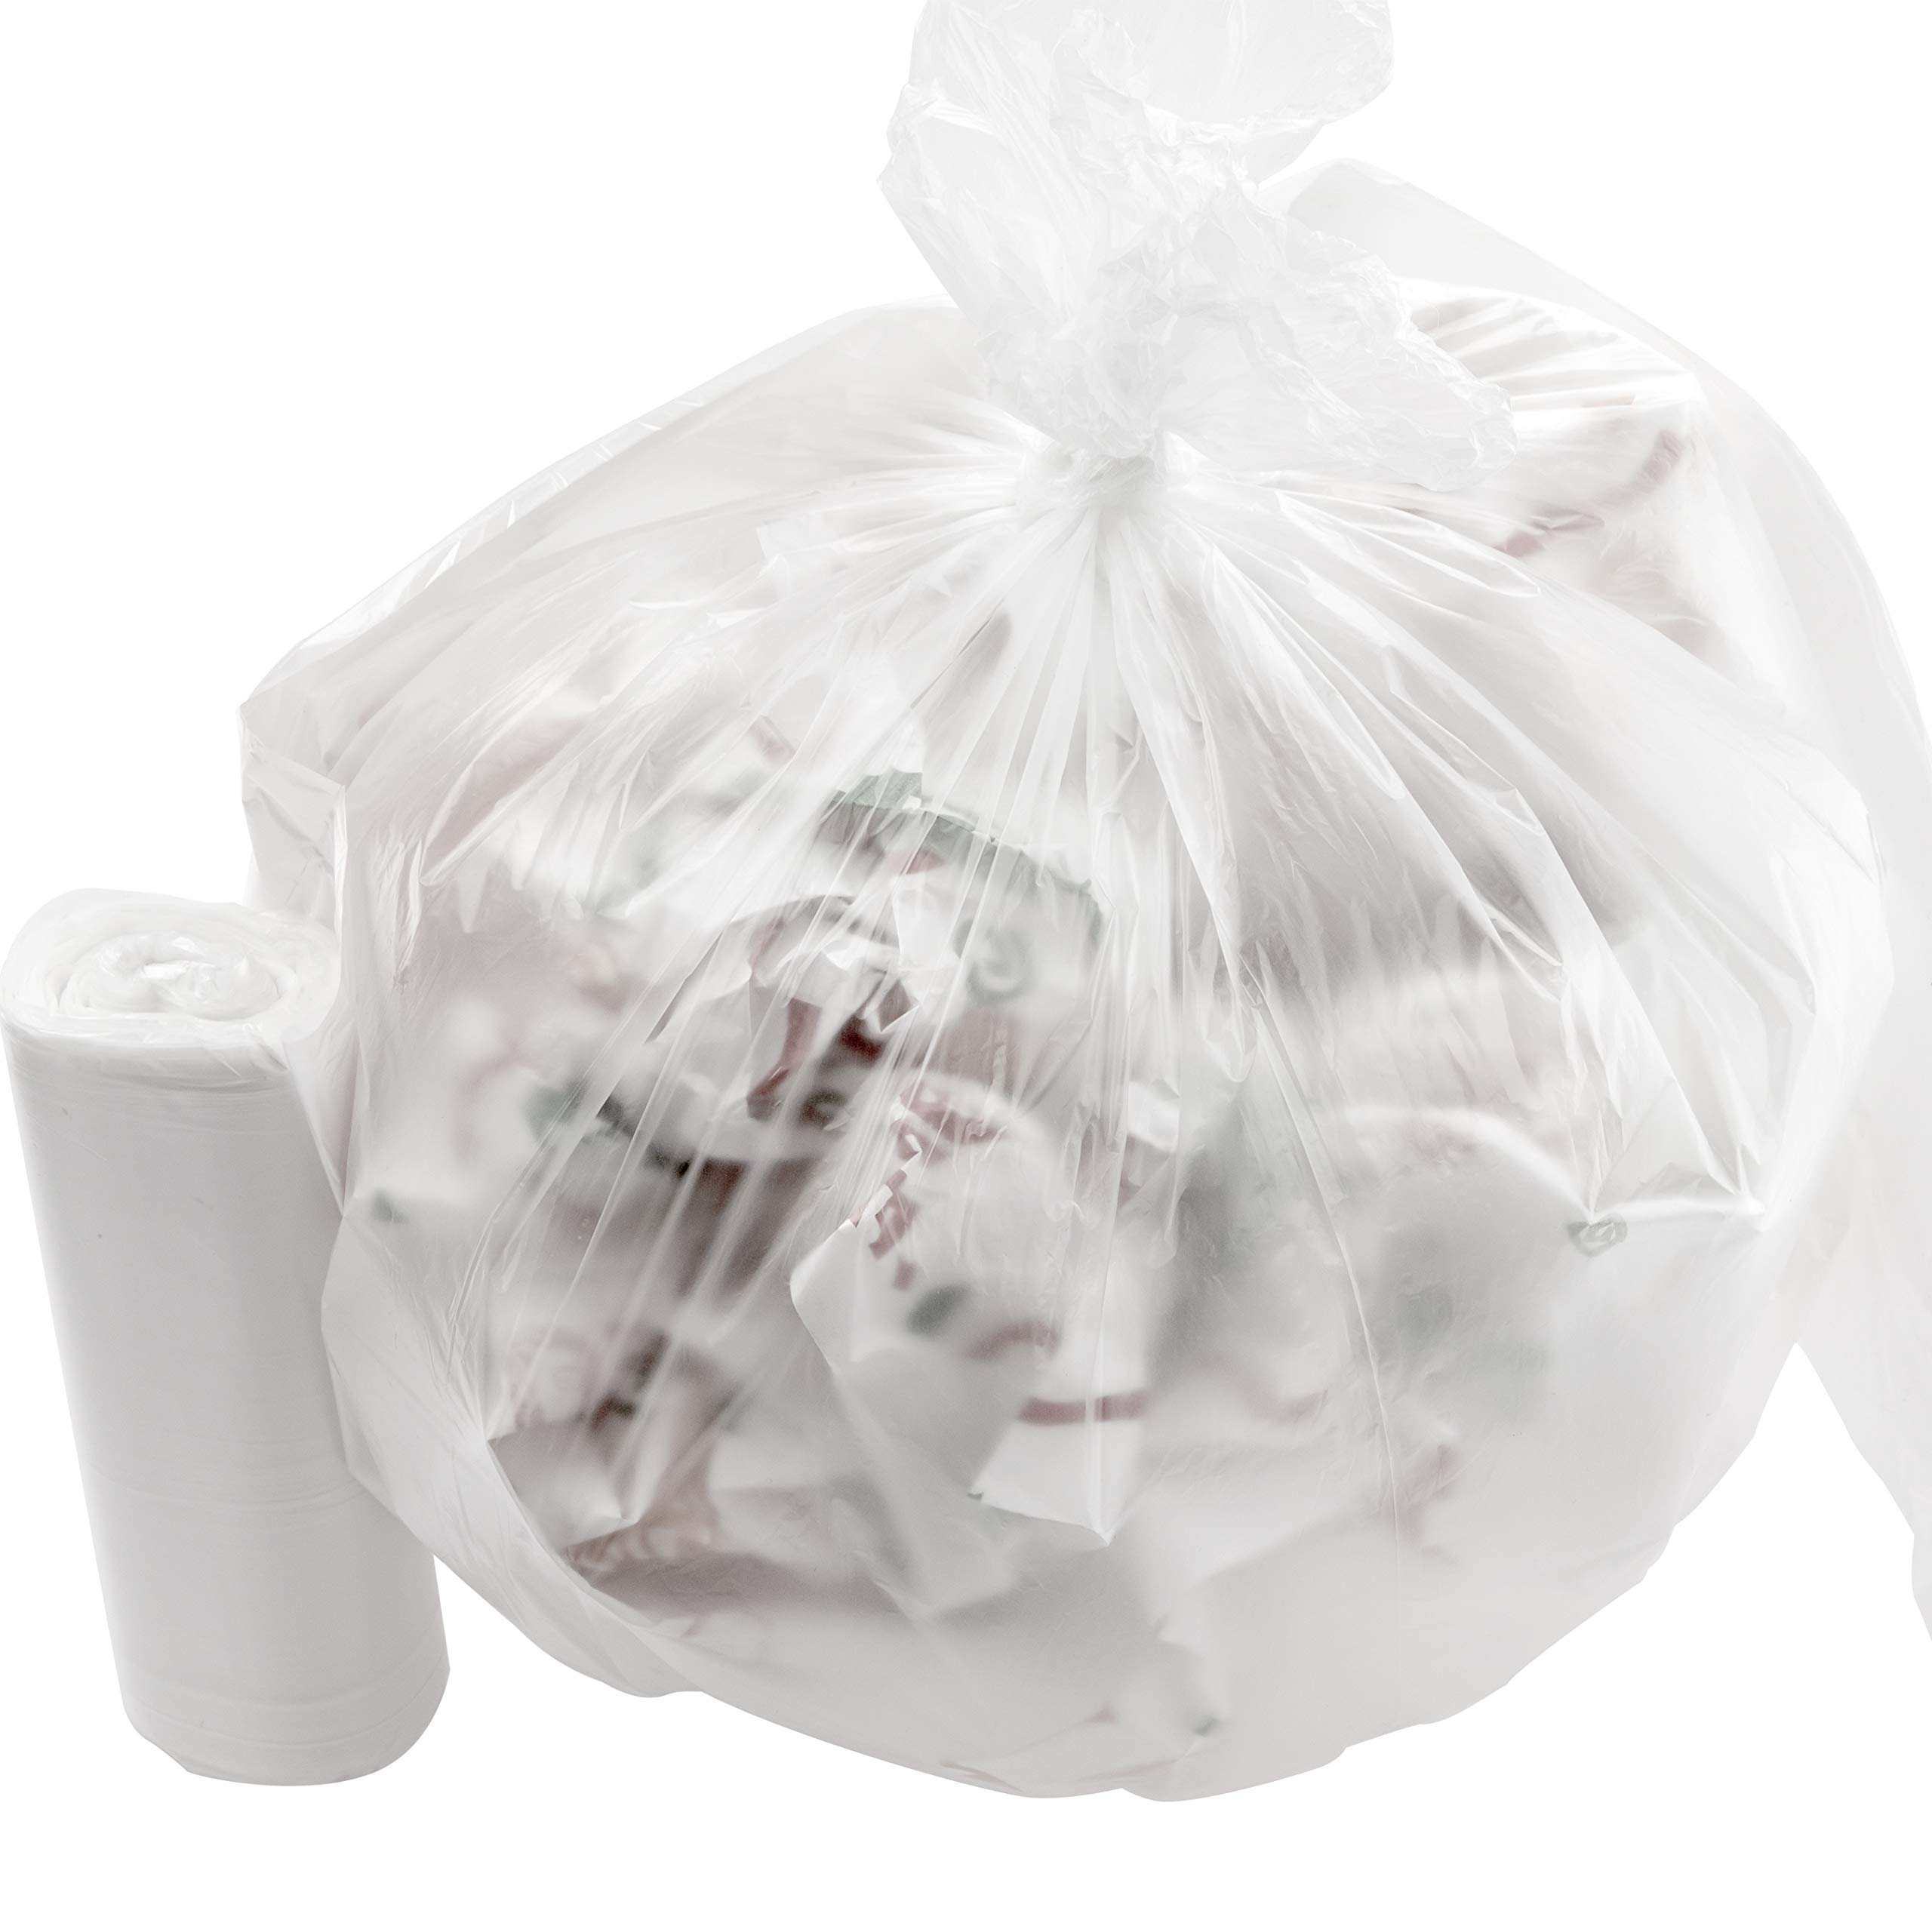 Leak-Proof Clear 4 Gallon Trash Can Liners 1000Pk. Small Coreless Plastic Garbage Bags Perfect for Bathroom Wastebaskets, Kitchens, Offices or Recycling Bins. Great for Kitty Litter or Diaper Disposal by Mop Mob